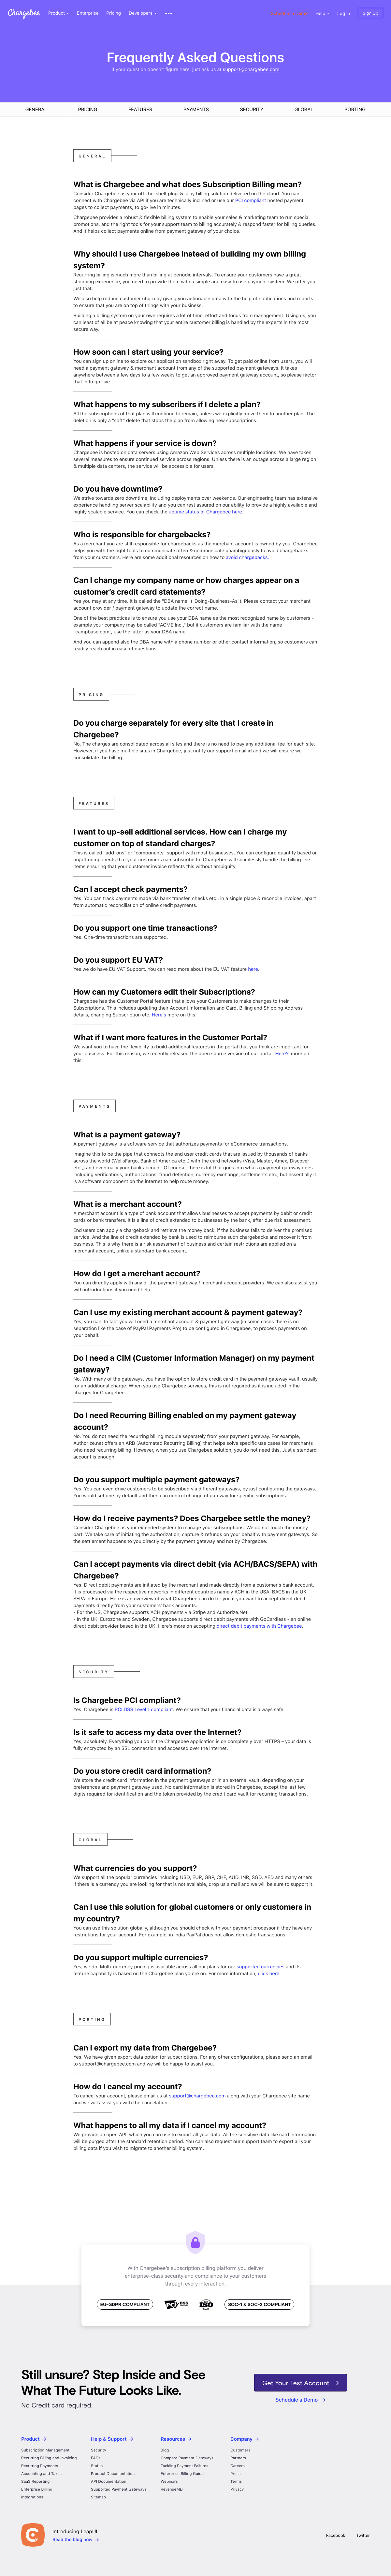 Chargebee - FAQs page